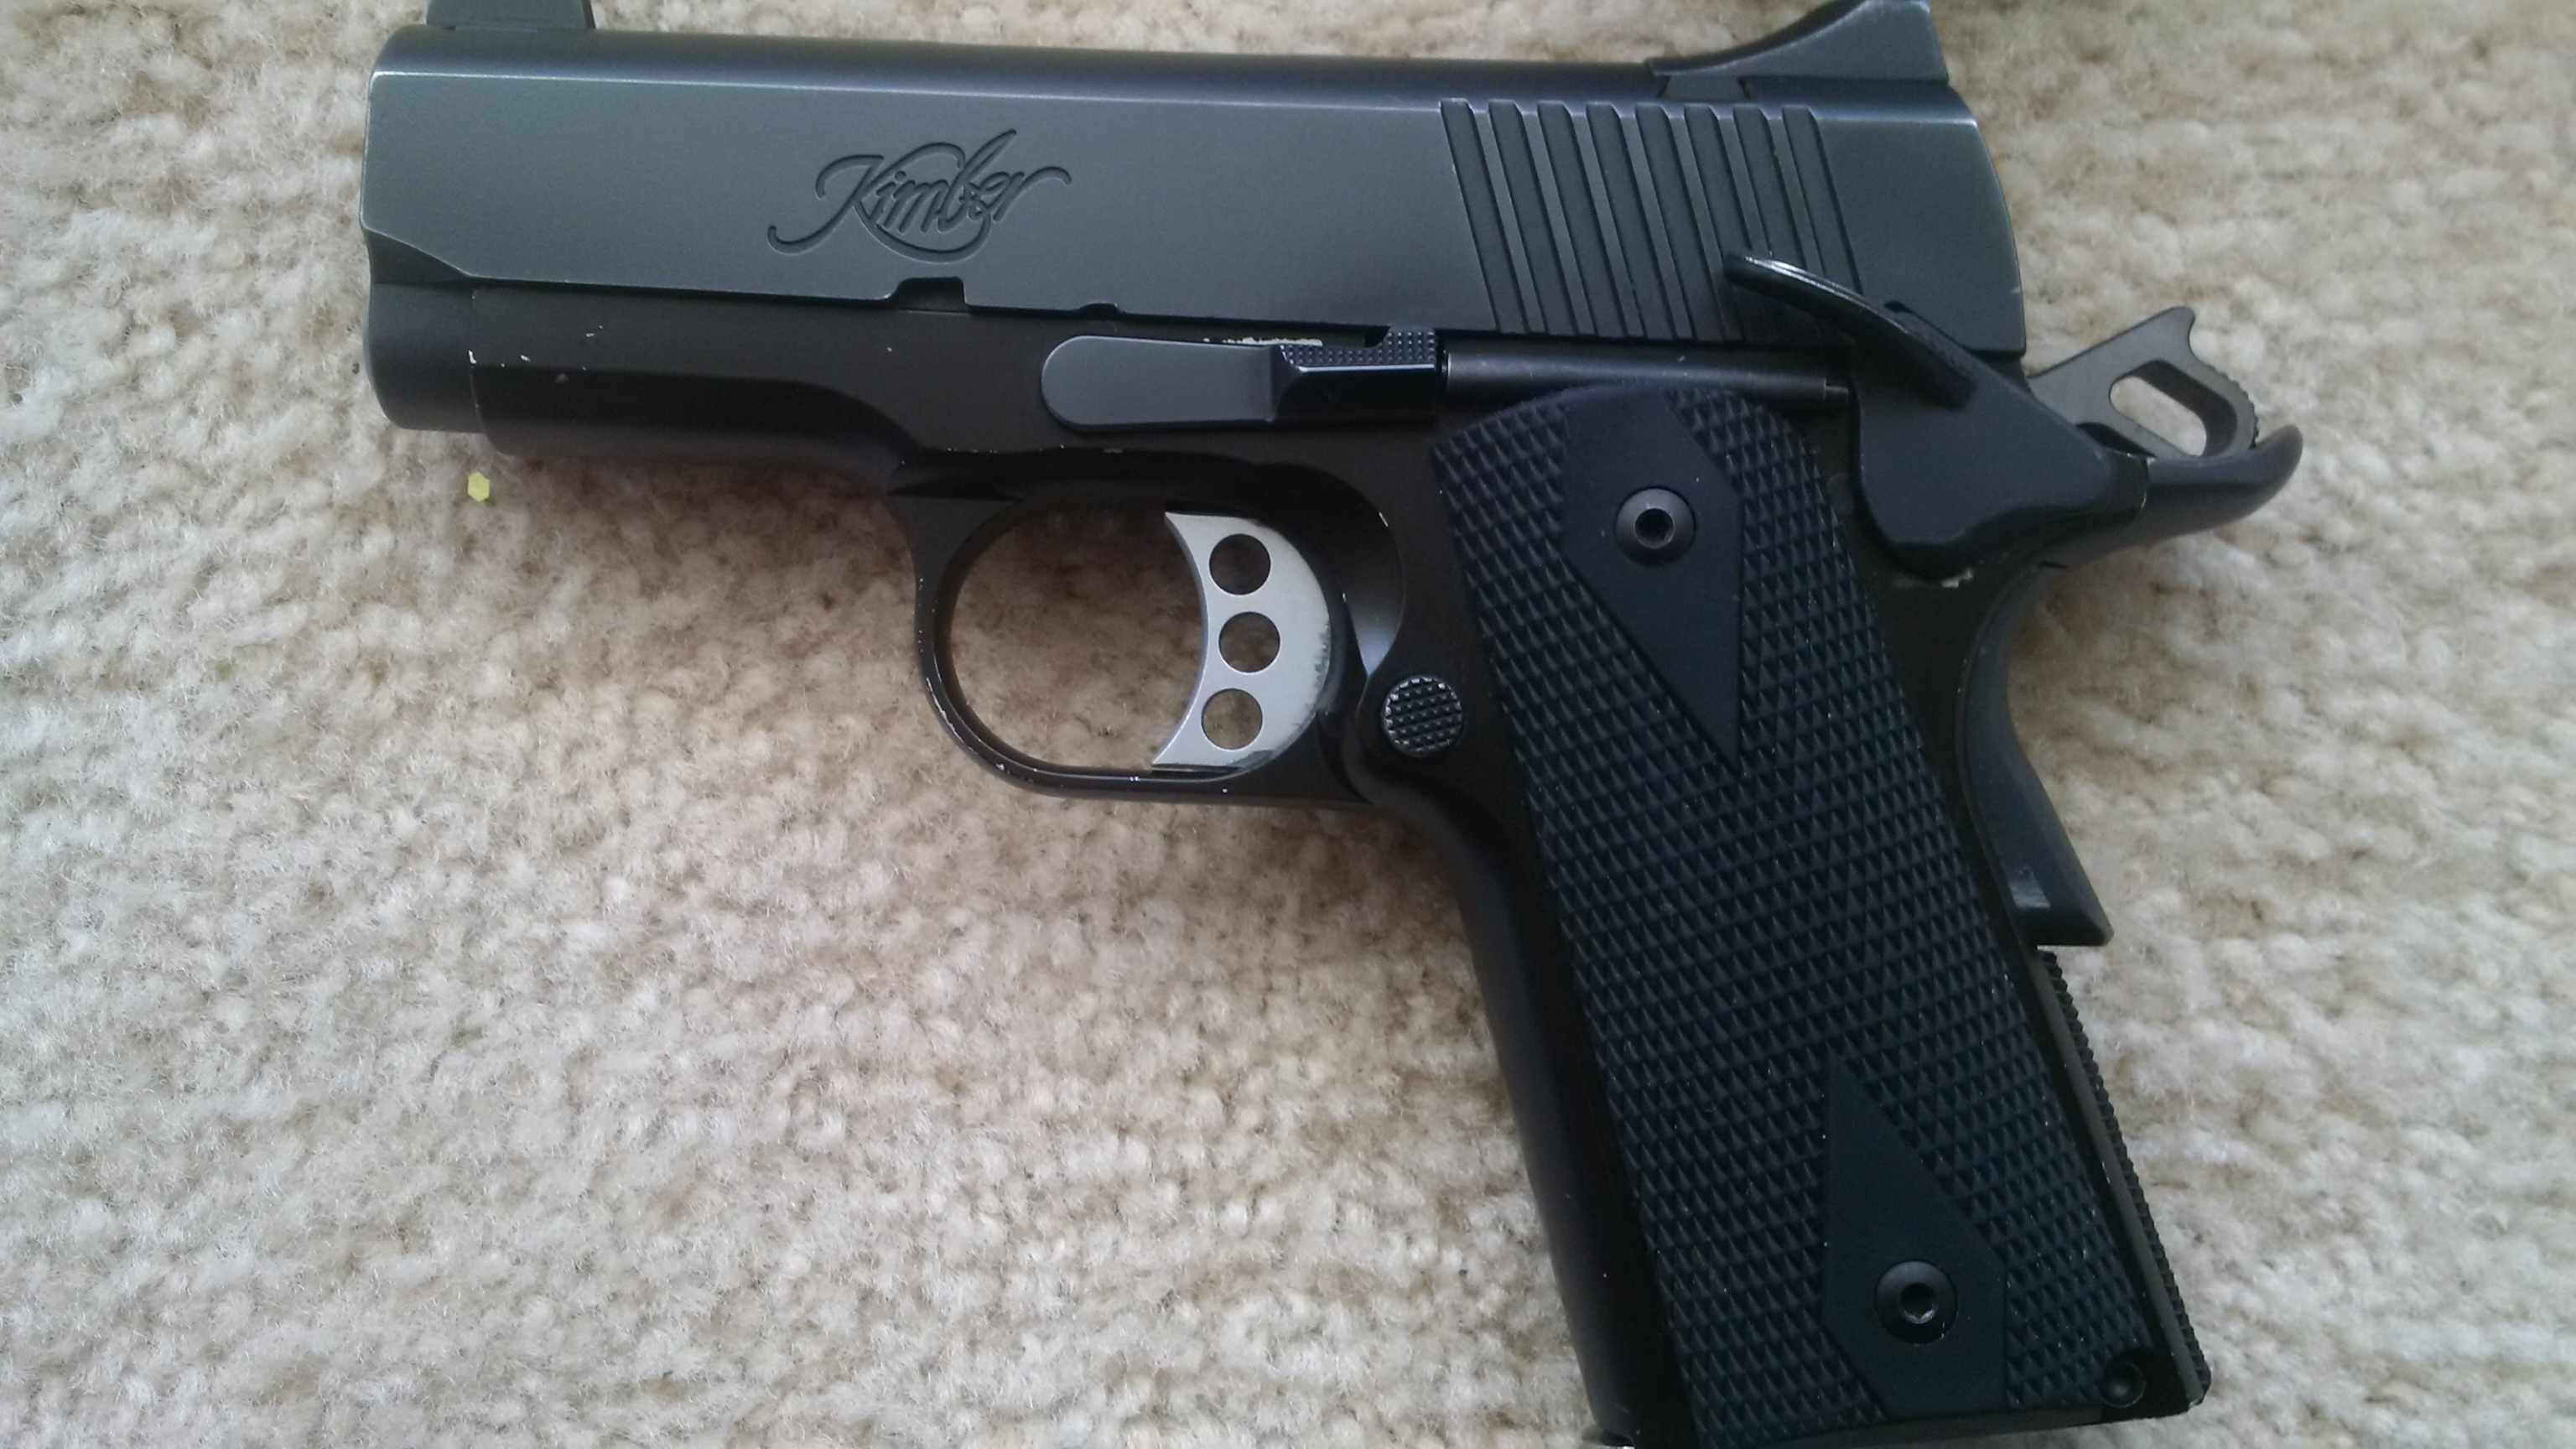 thin grips for 1911?